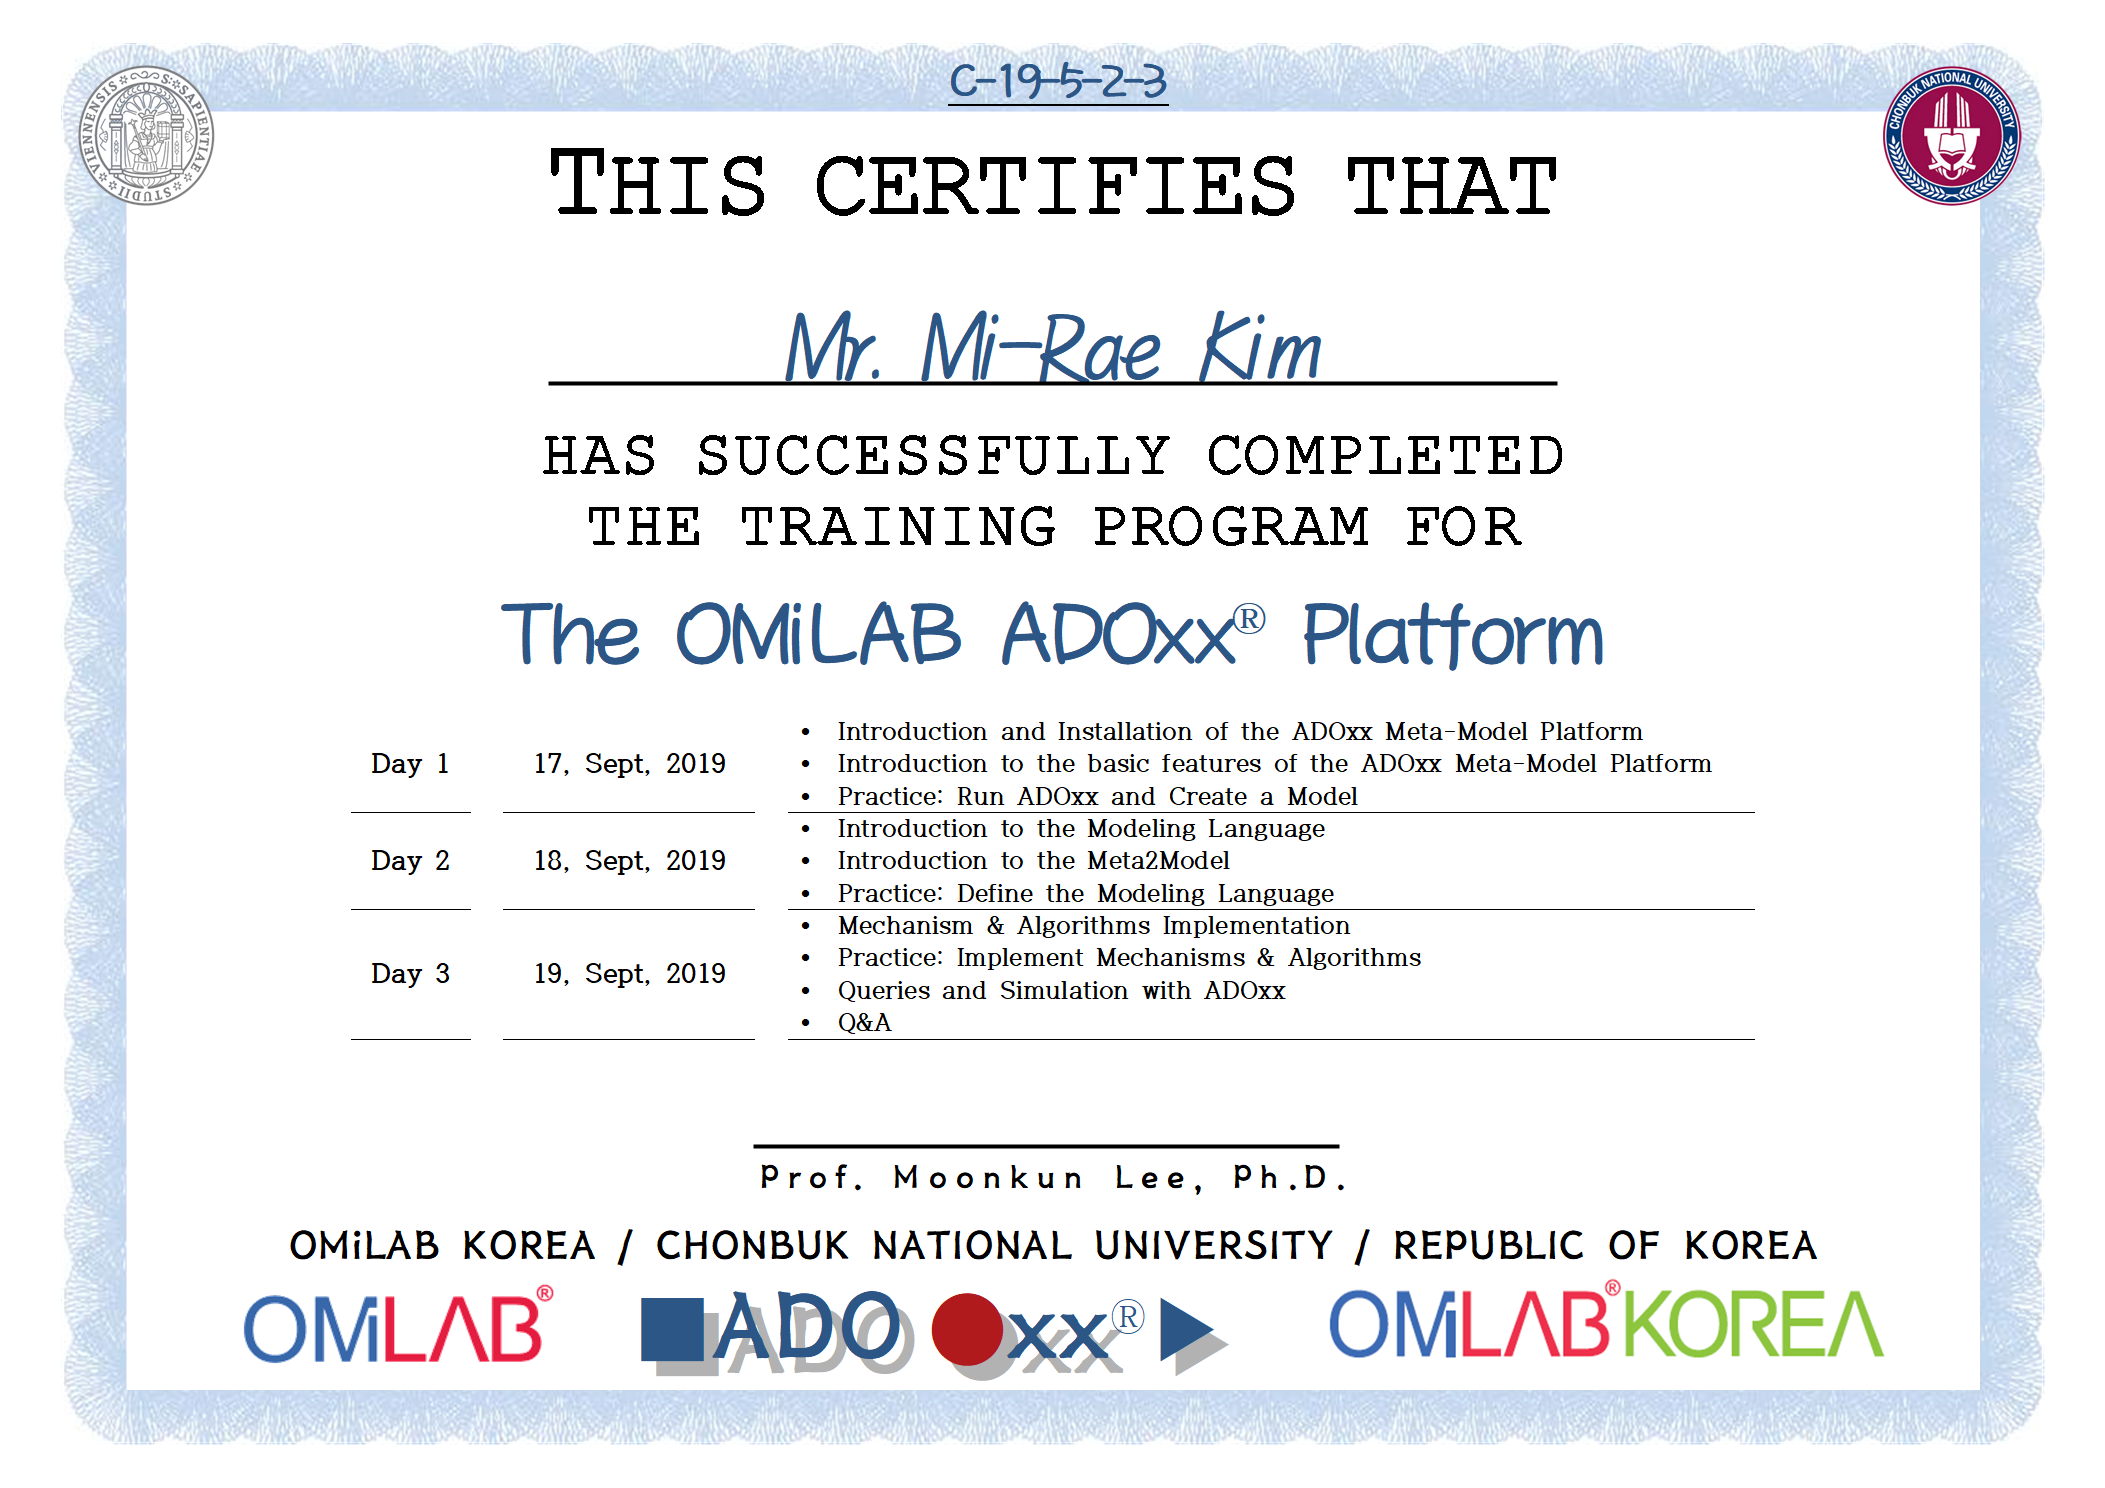 3. [CBNU-U] Mr. Mi-Rae Kim - 김미래 - 2019 제 5차 ADOxx Training 수료증-f.png